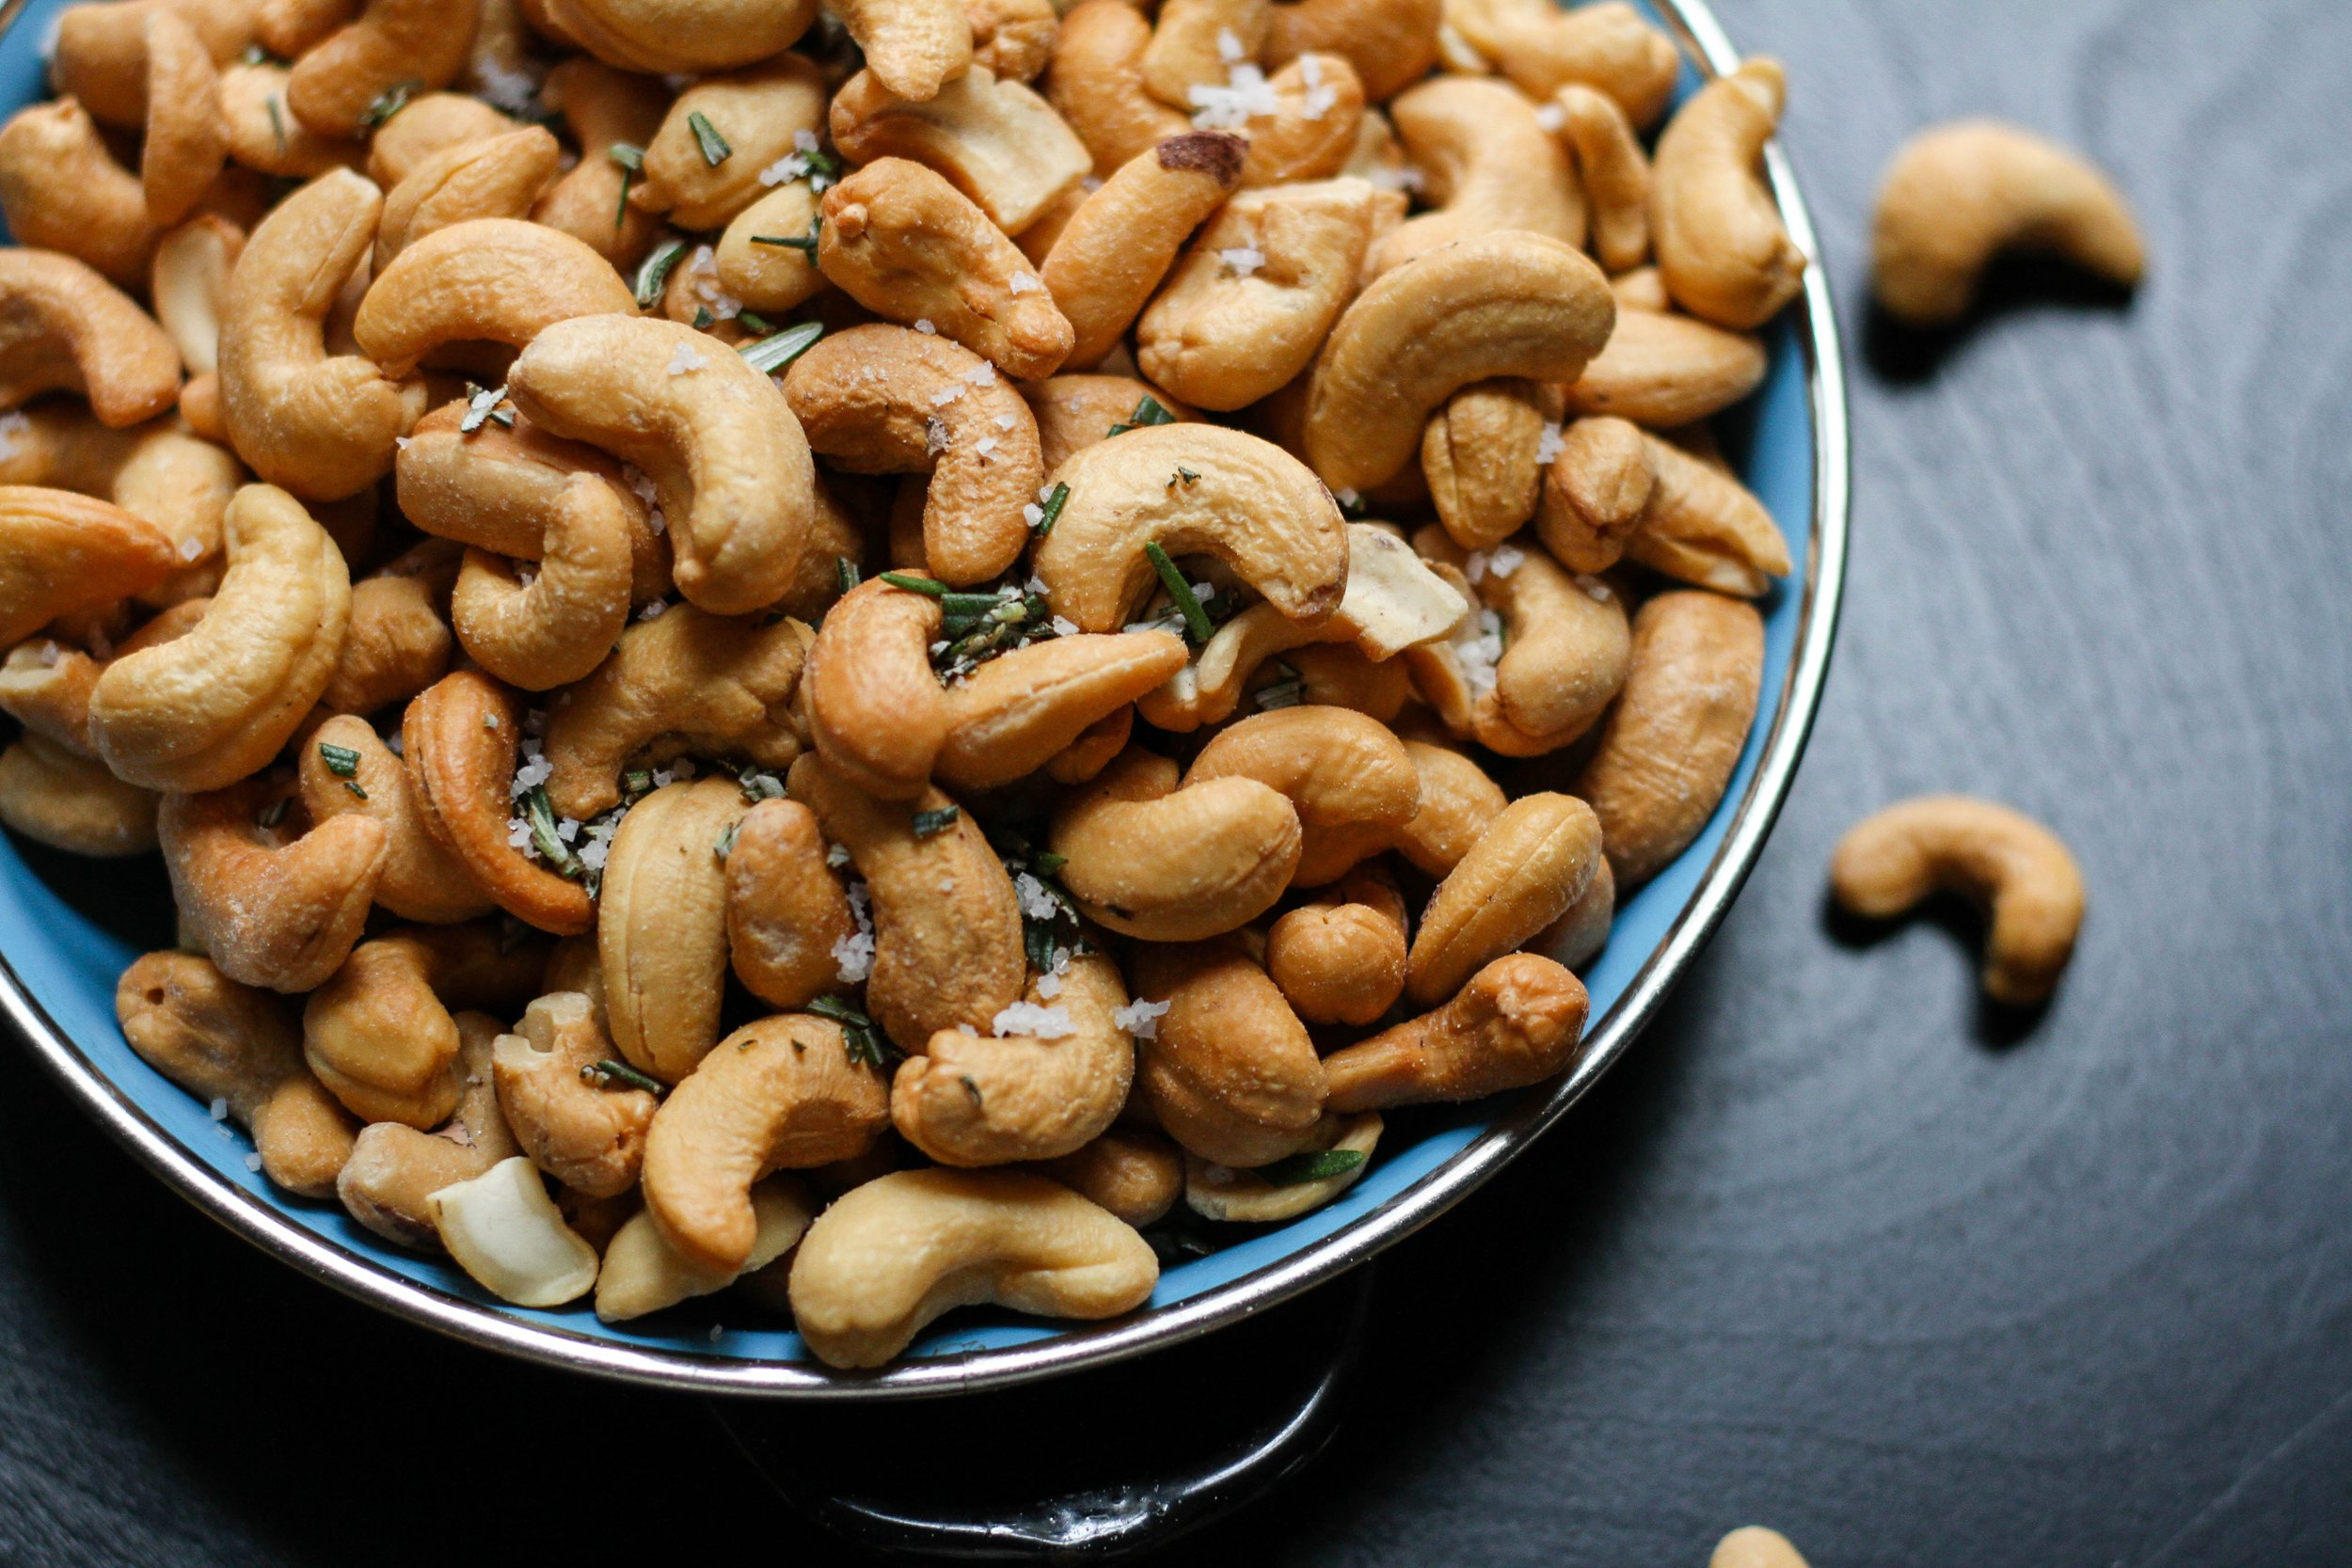 Who doesn't love a salty bowl of roasted nuts? This recipe elevates the experience to a whole other level. Coated with a spicy honey mustard mixture, these raw cashews roast to golden brown perfection. They make a great appetizer at a cocktail party and thankfully, travel well too. To make this recipe vegan, simply substitute maple syrup for the honey. For an extra touch, sprinkle them with rock salt and sautéed chives.